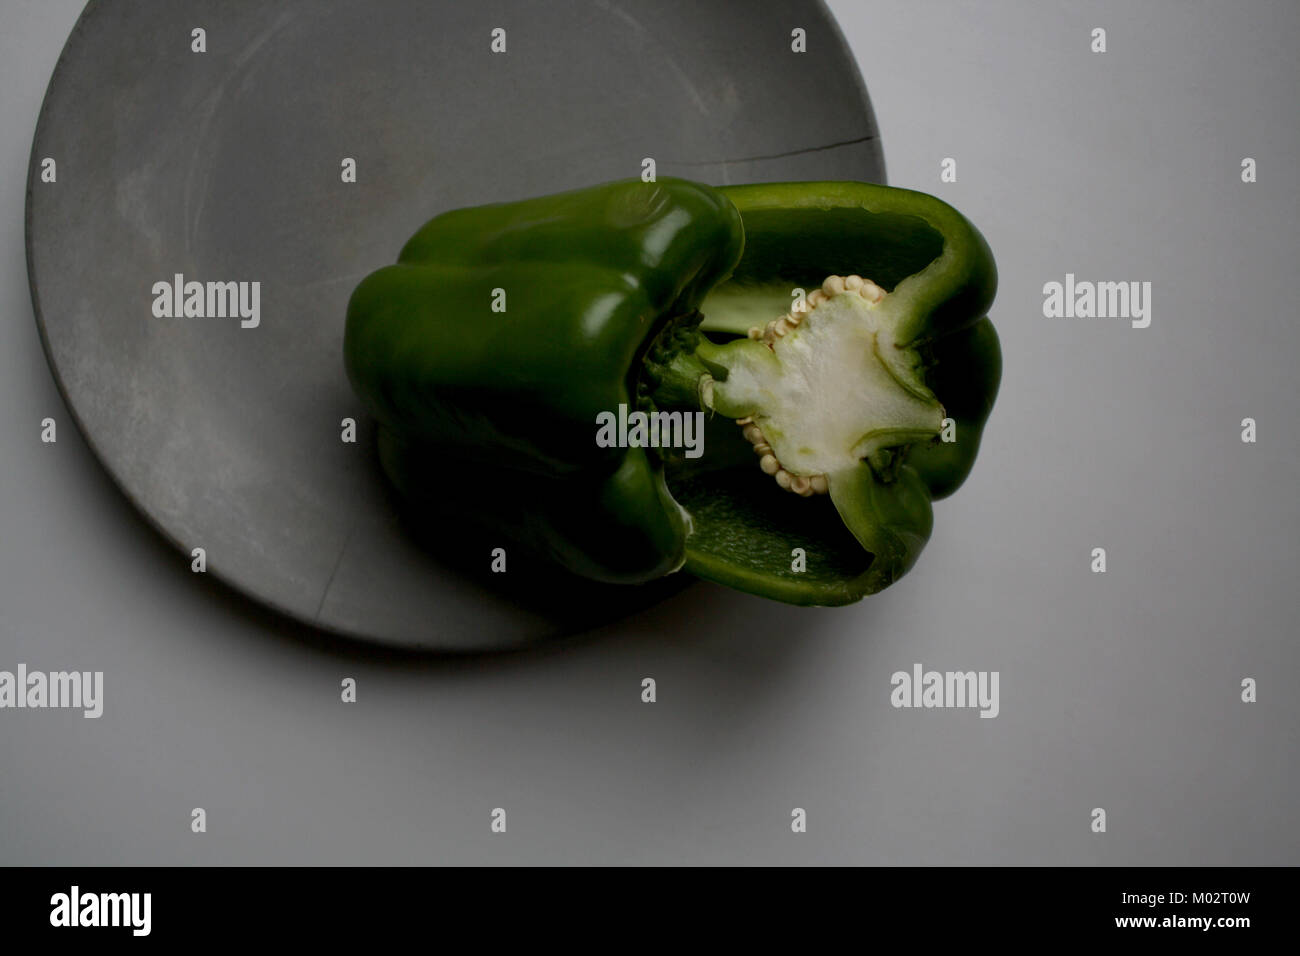 Freshly cut poblano pepper slices isolated on grey concrete plate Stock Photo